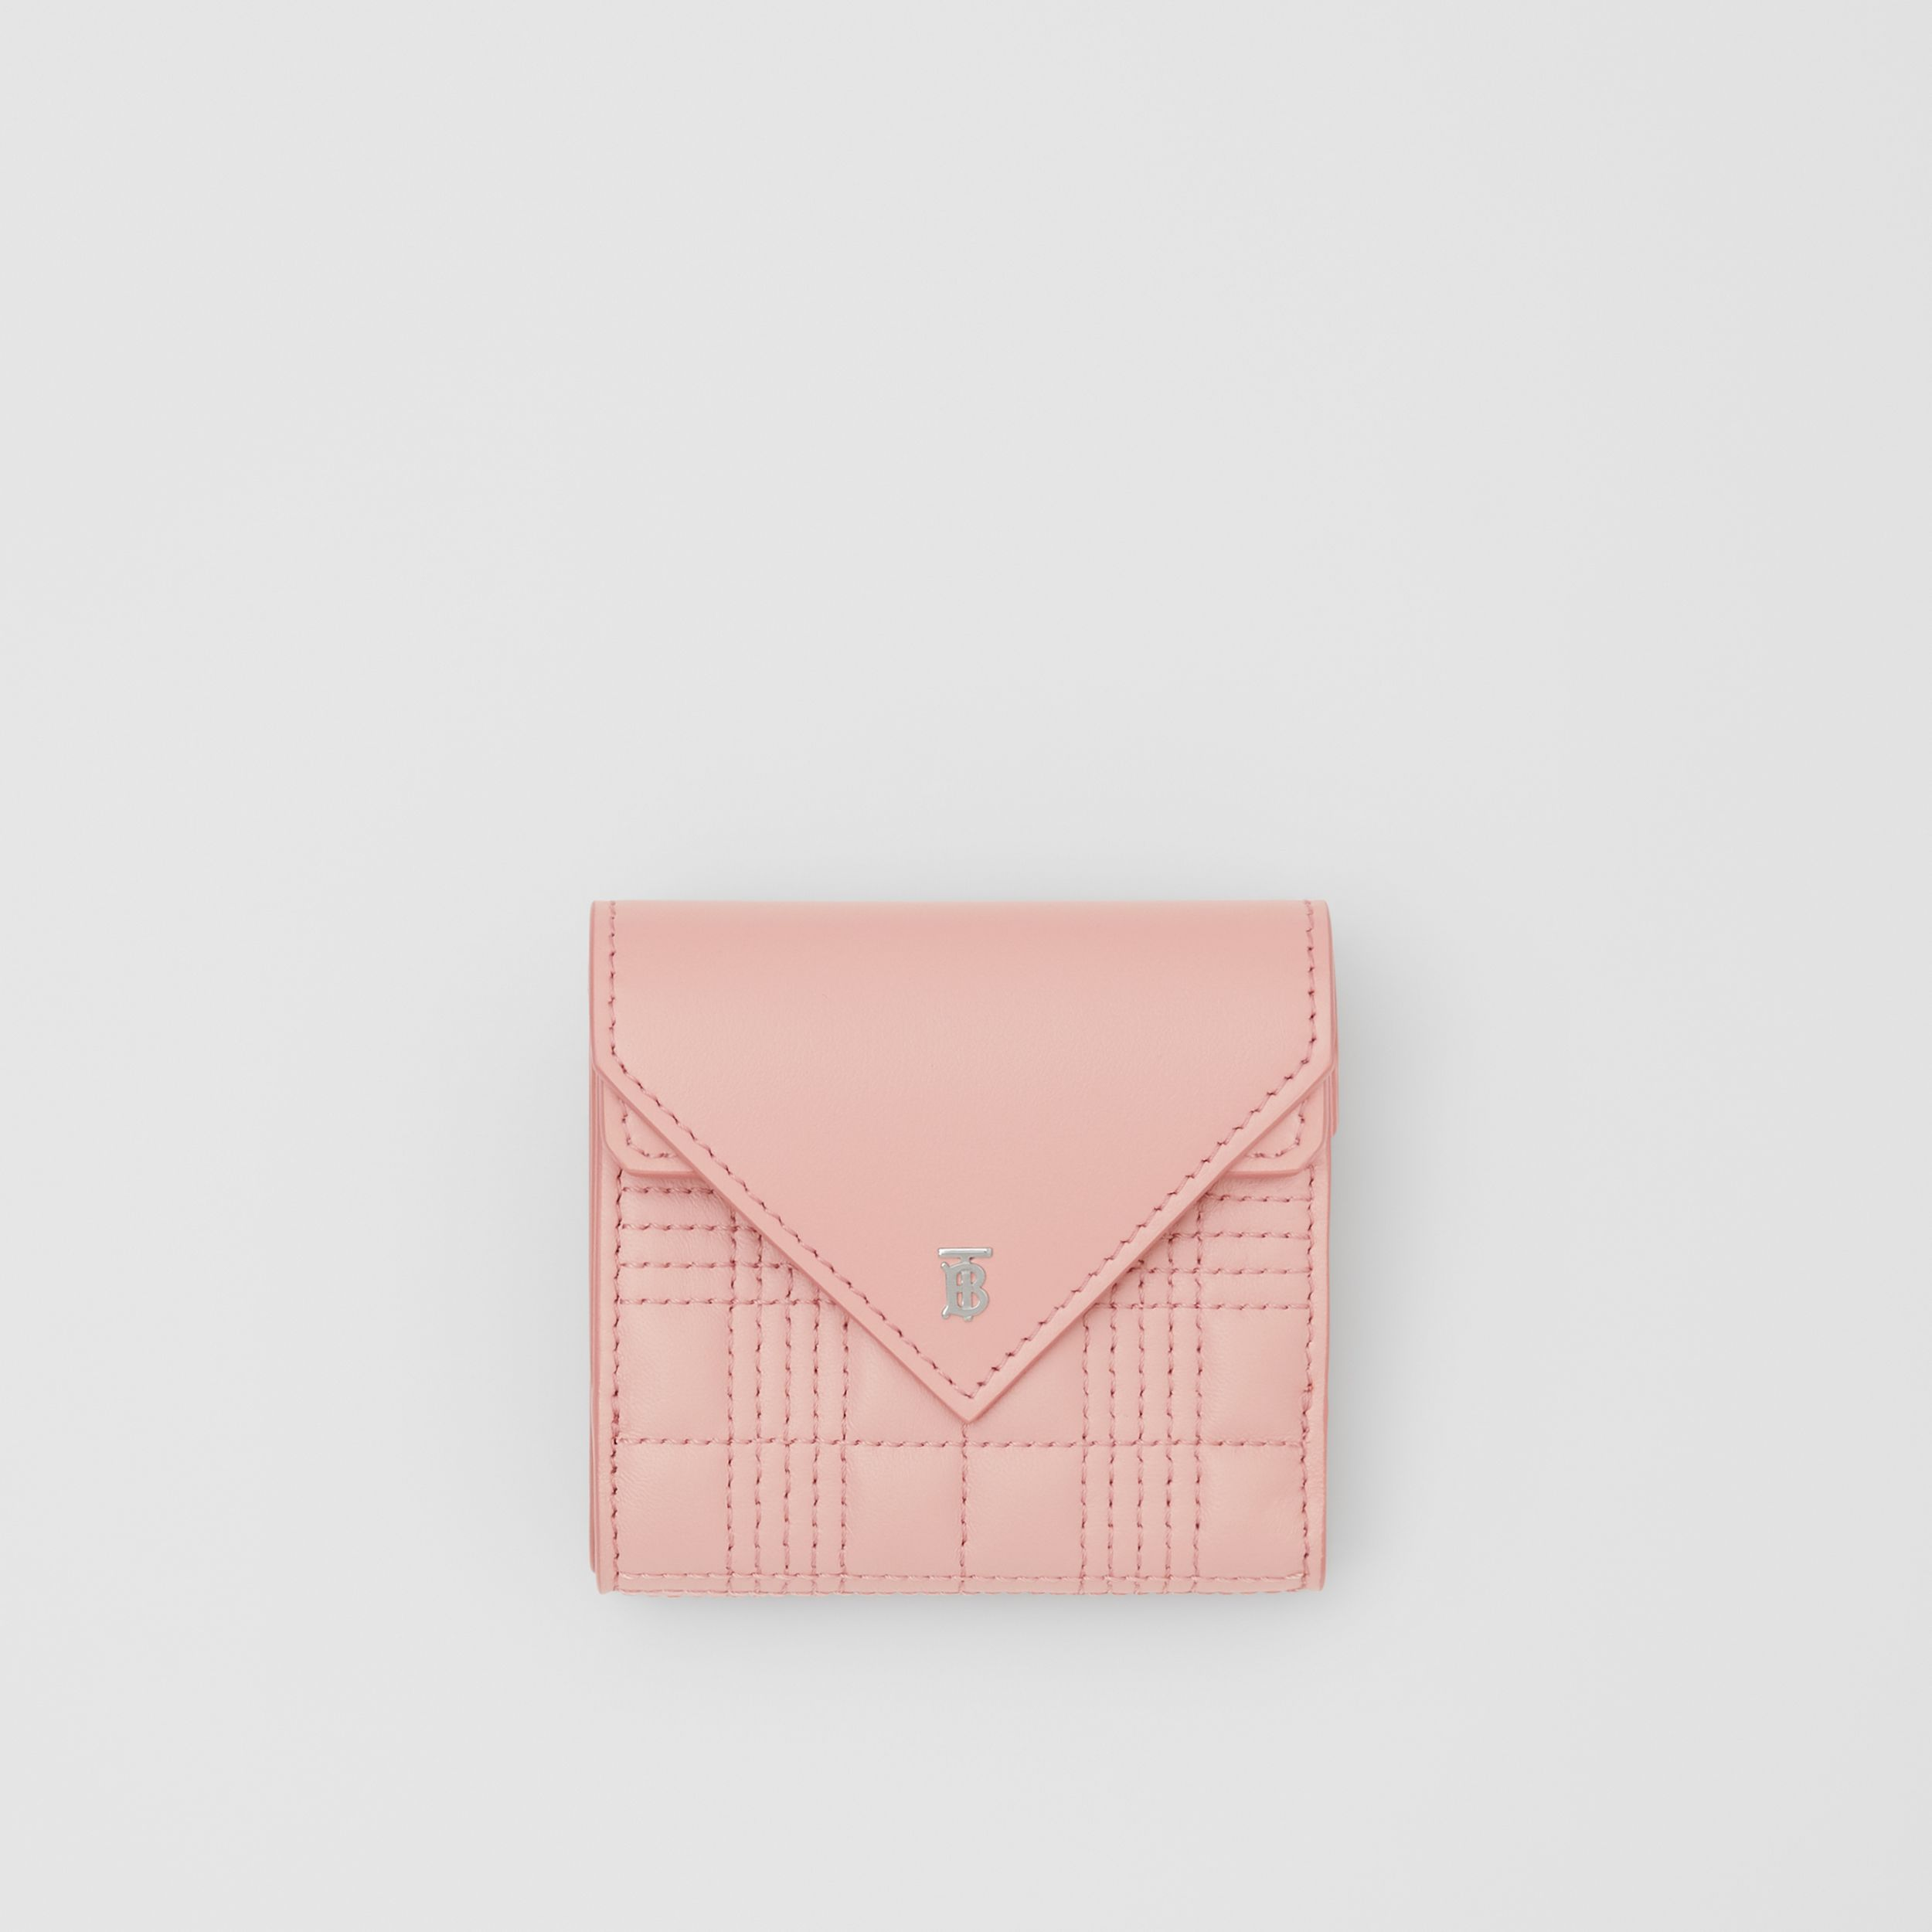 Quilted Lambskin Folding Wallet in Blush Pink - Women | Burberry Canada - 1